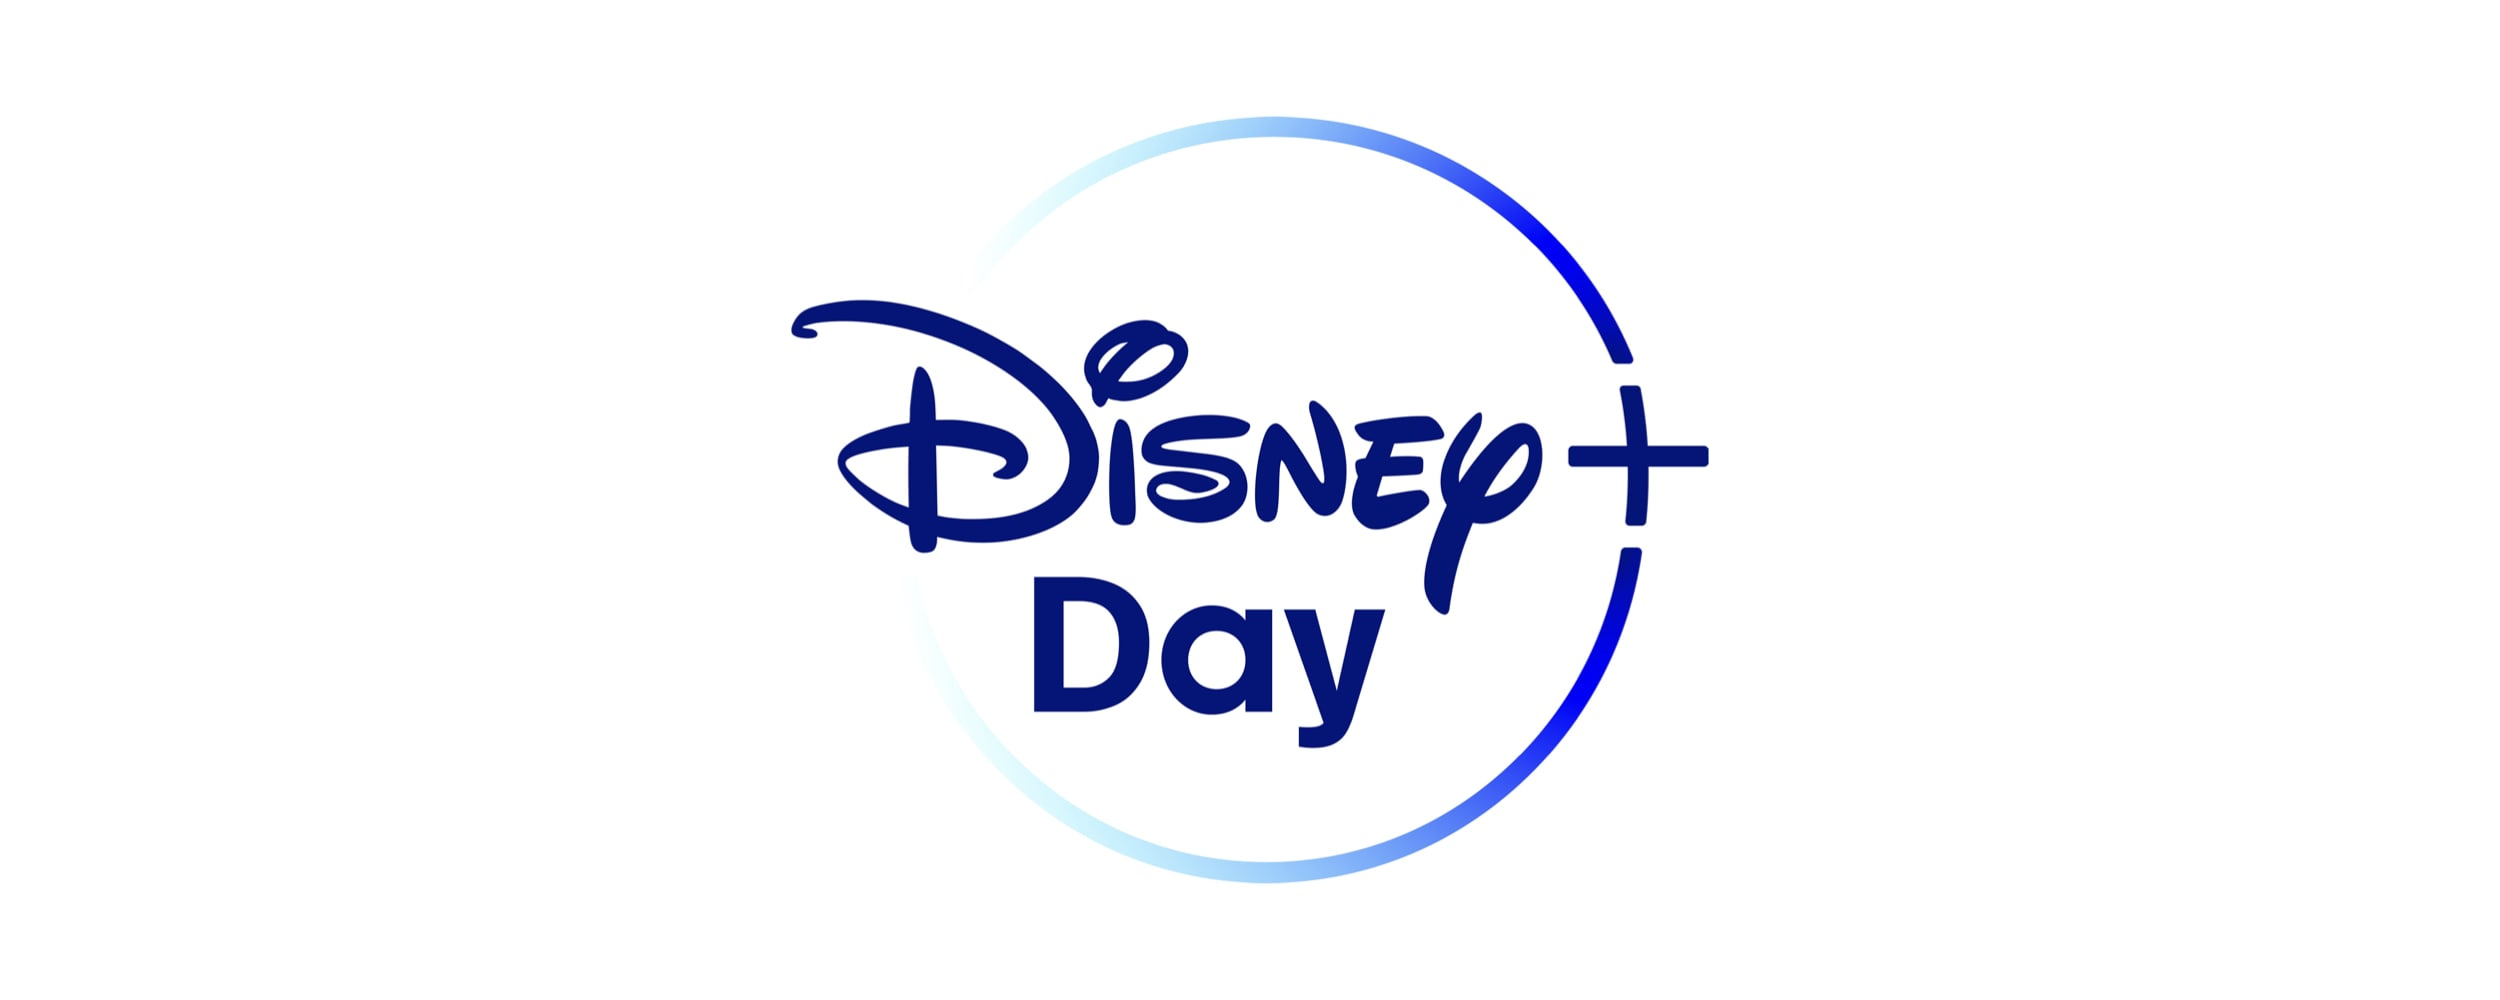 The Walt Disney Company Celebrates Disney+ Day On November 12 To Thank Subscribers With New Content, Fan Experiences, And More